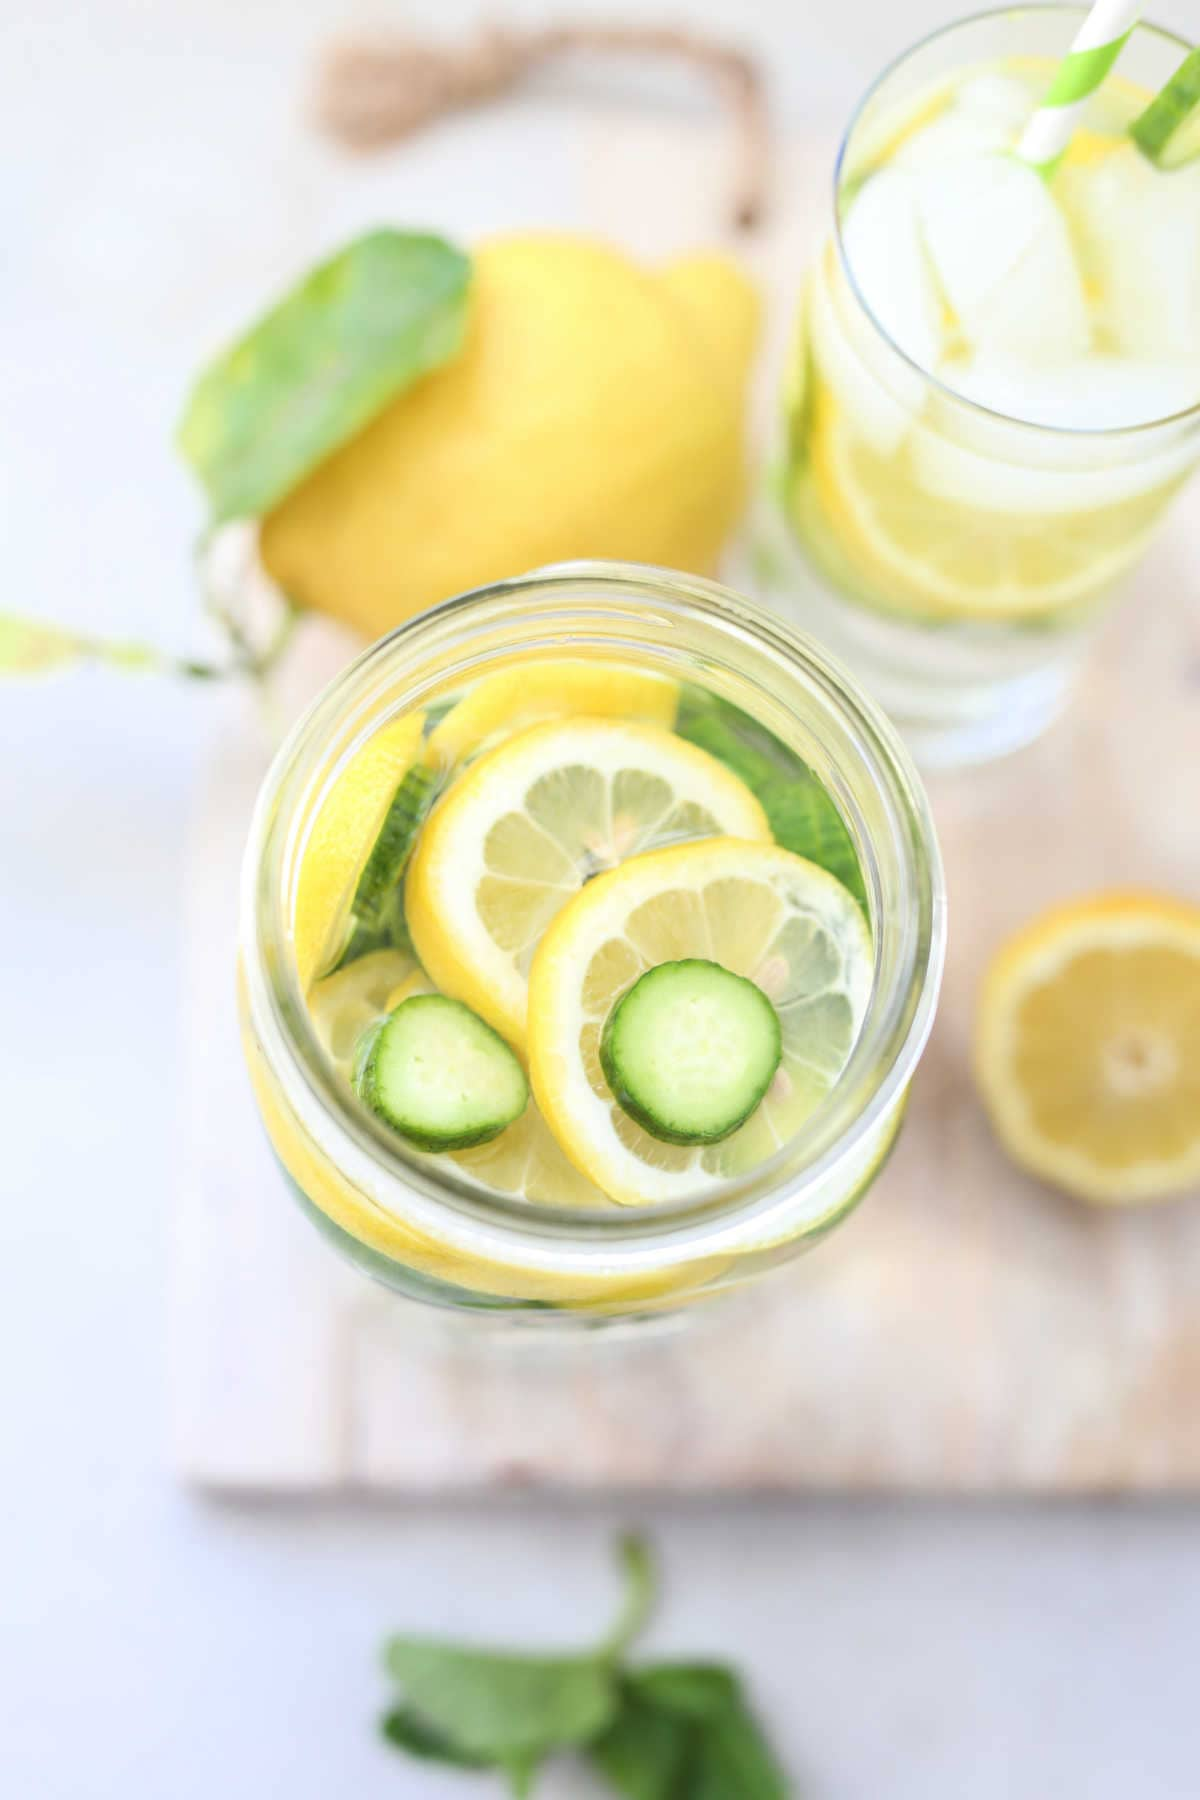 Infused water recipes for detox and cleansing the body! These flavored water recipes will help you stay hydrated, nourished, cleansed, and are excellent if you are trying to stick to a low-carb diet and cut sugars! #infusedwater #recipes #weightloss #detox #cleanse #water #flavored #fruitwater | Recipes at Delightful Mom Food